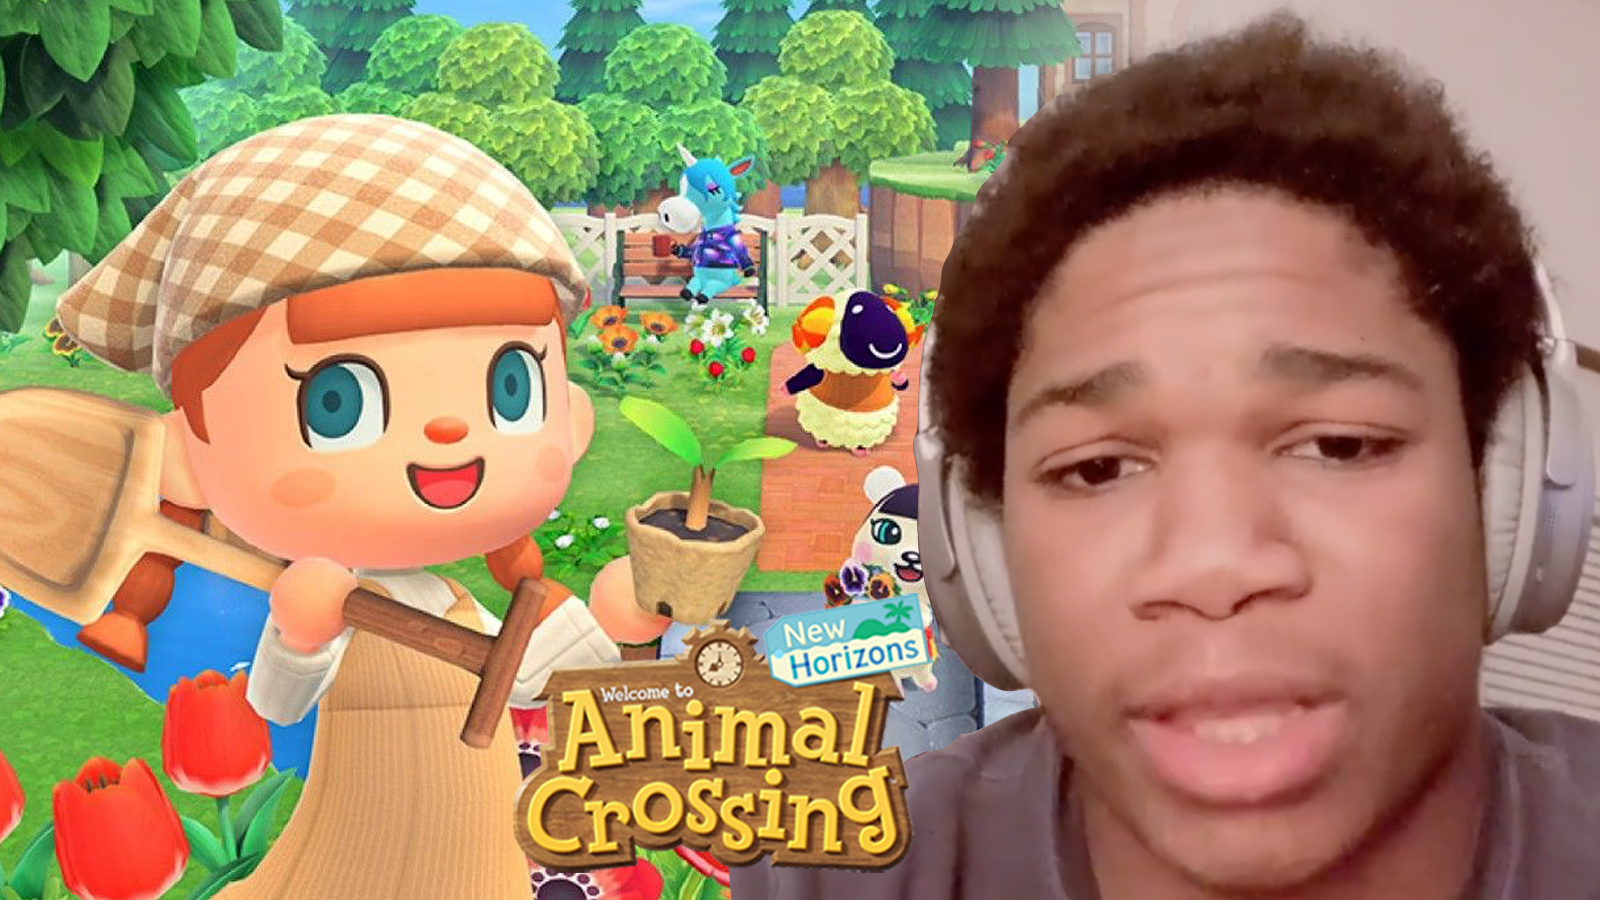 Animal Crossing TikTok Impression